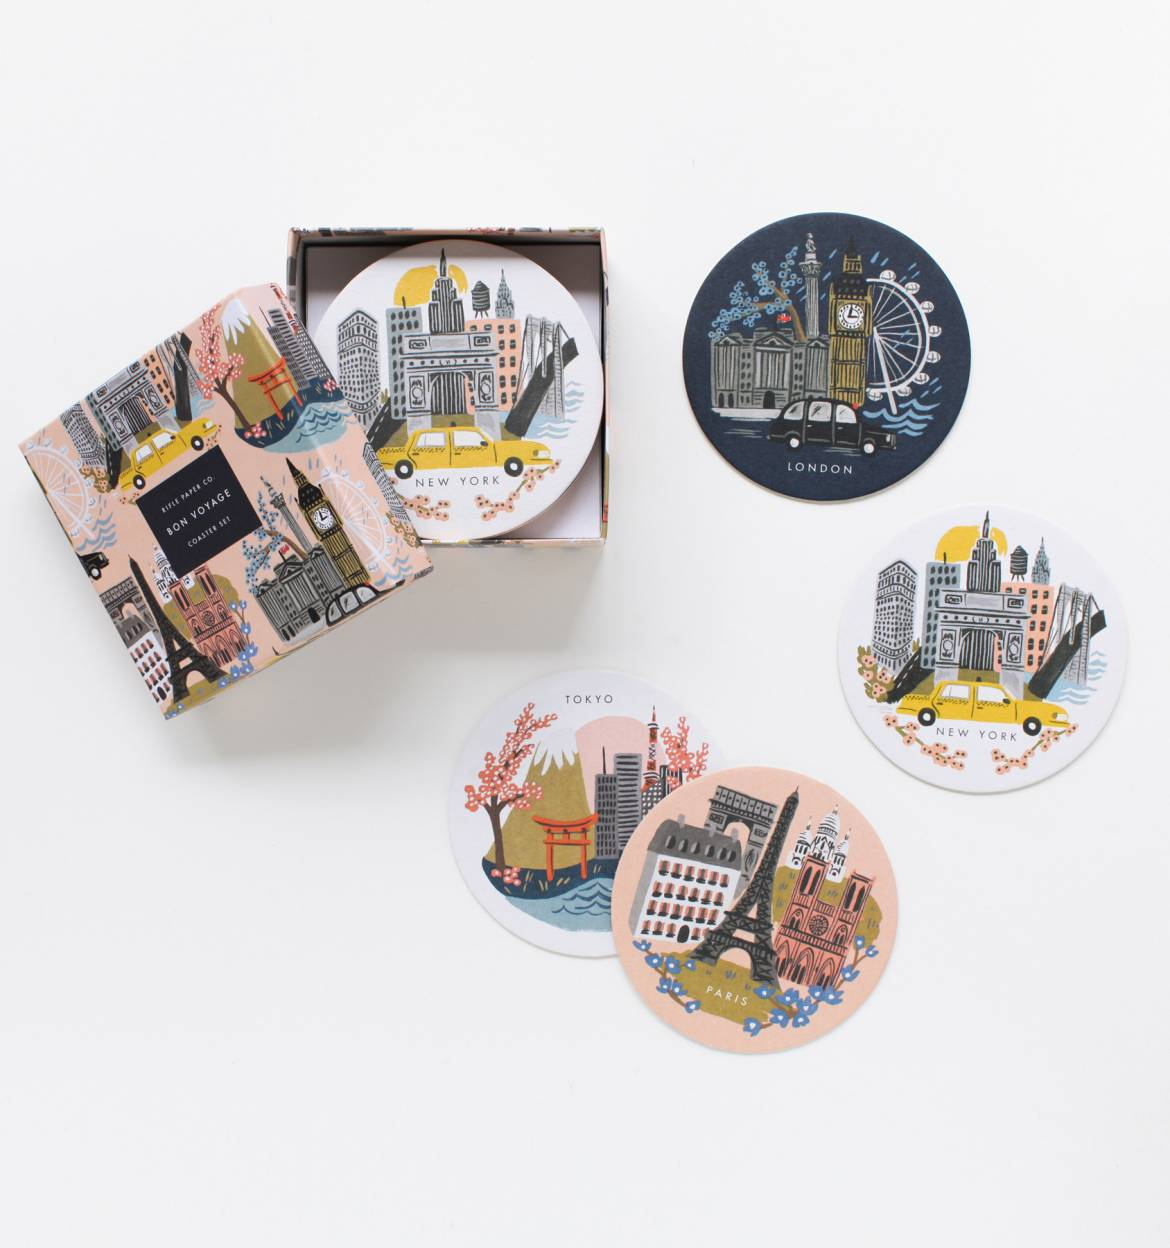 bon voyage coaster set  les gifts - gift box with illustrated cities coasters